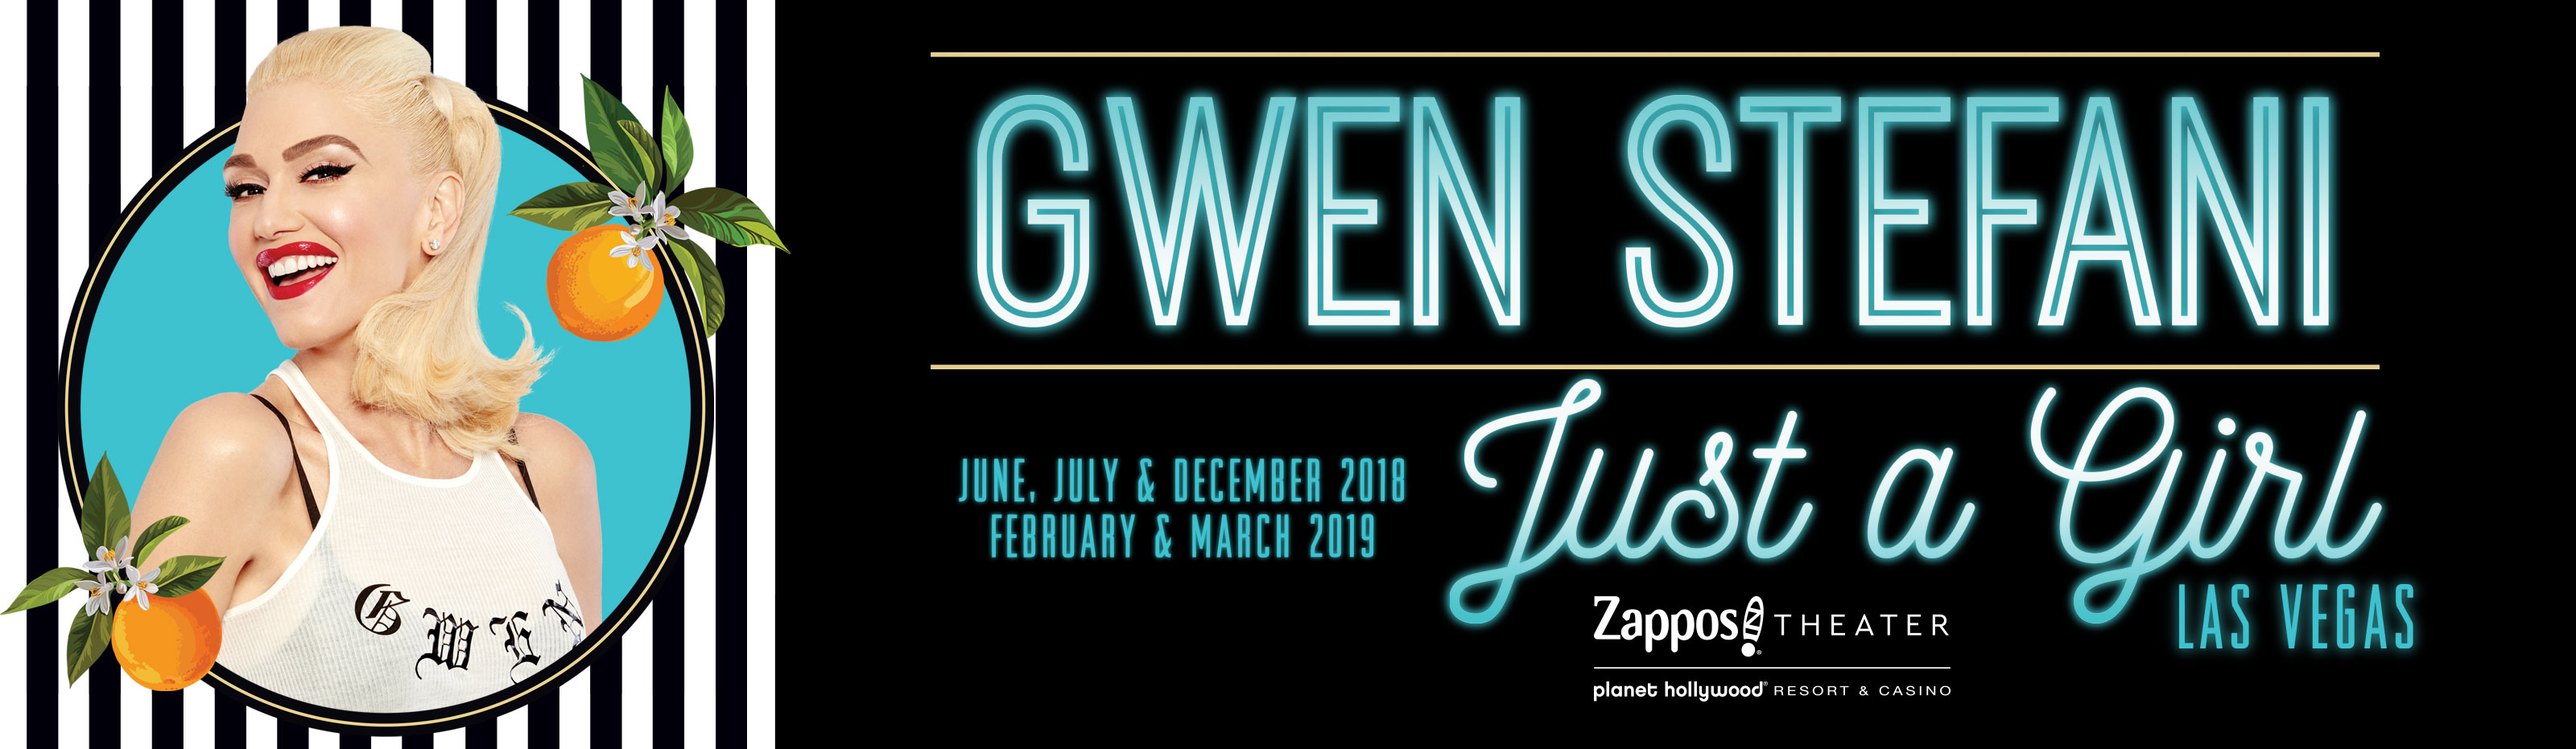 Gwen Stefani | Official Site